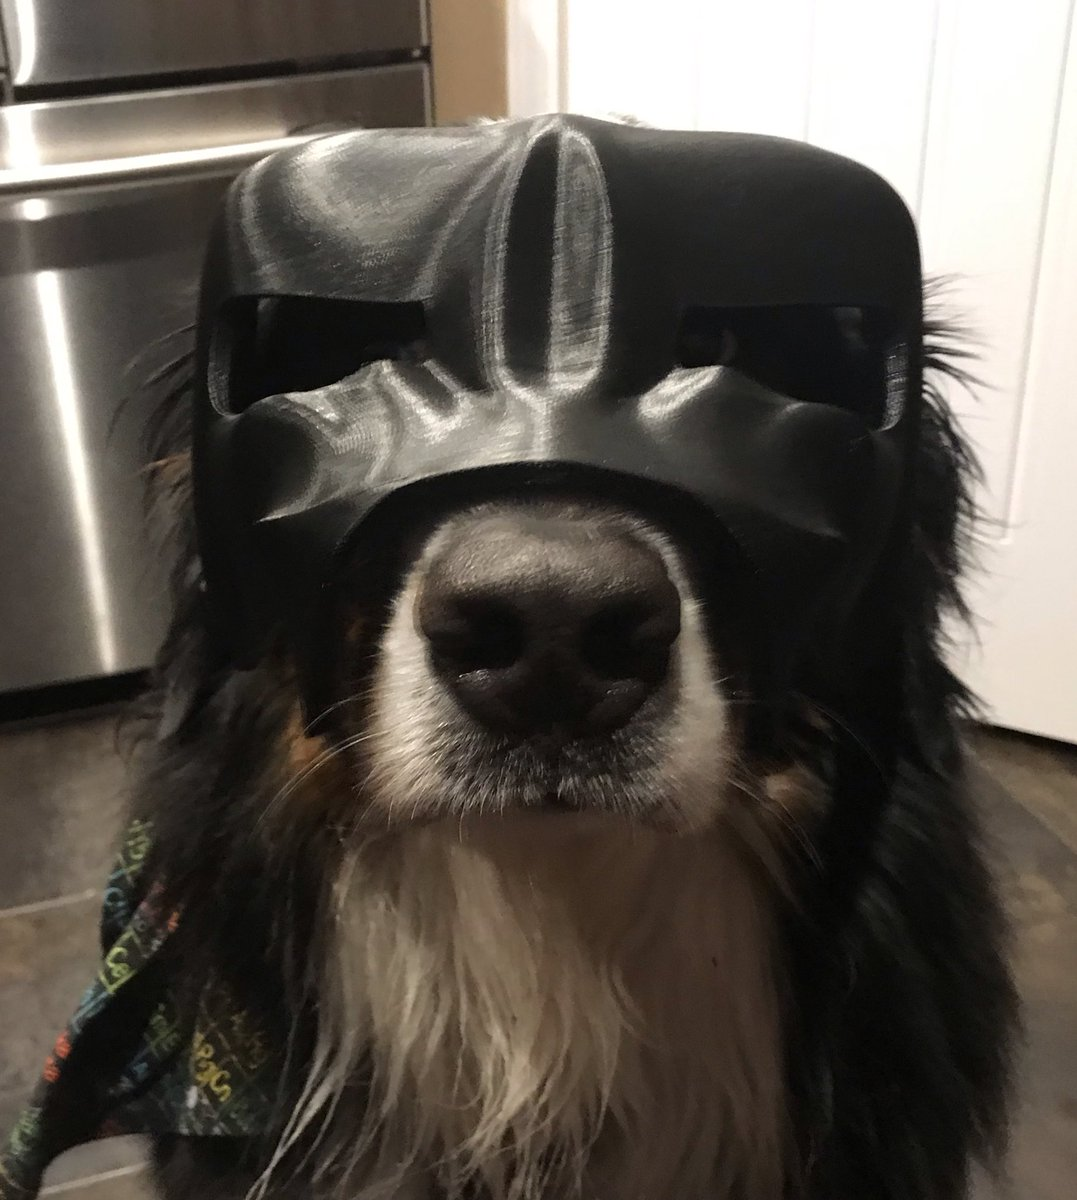 Bunsen And Beaker On Twitter My Dad Is 3 D Printing Me An Entire Dog Armour Set What Do You Think Of It So Far He Can Add Some Accessories To The Helmet Pets costume captain marvel flerken cloak warm cute pet costume for cats small dogs. bunsen and beaker on twitter my dad